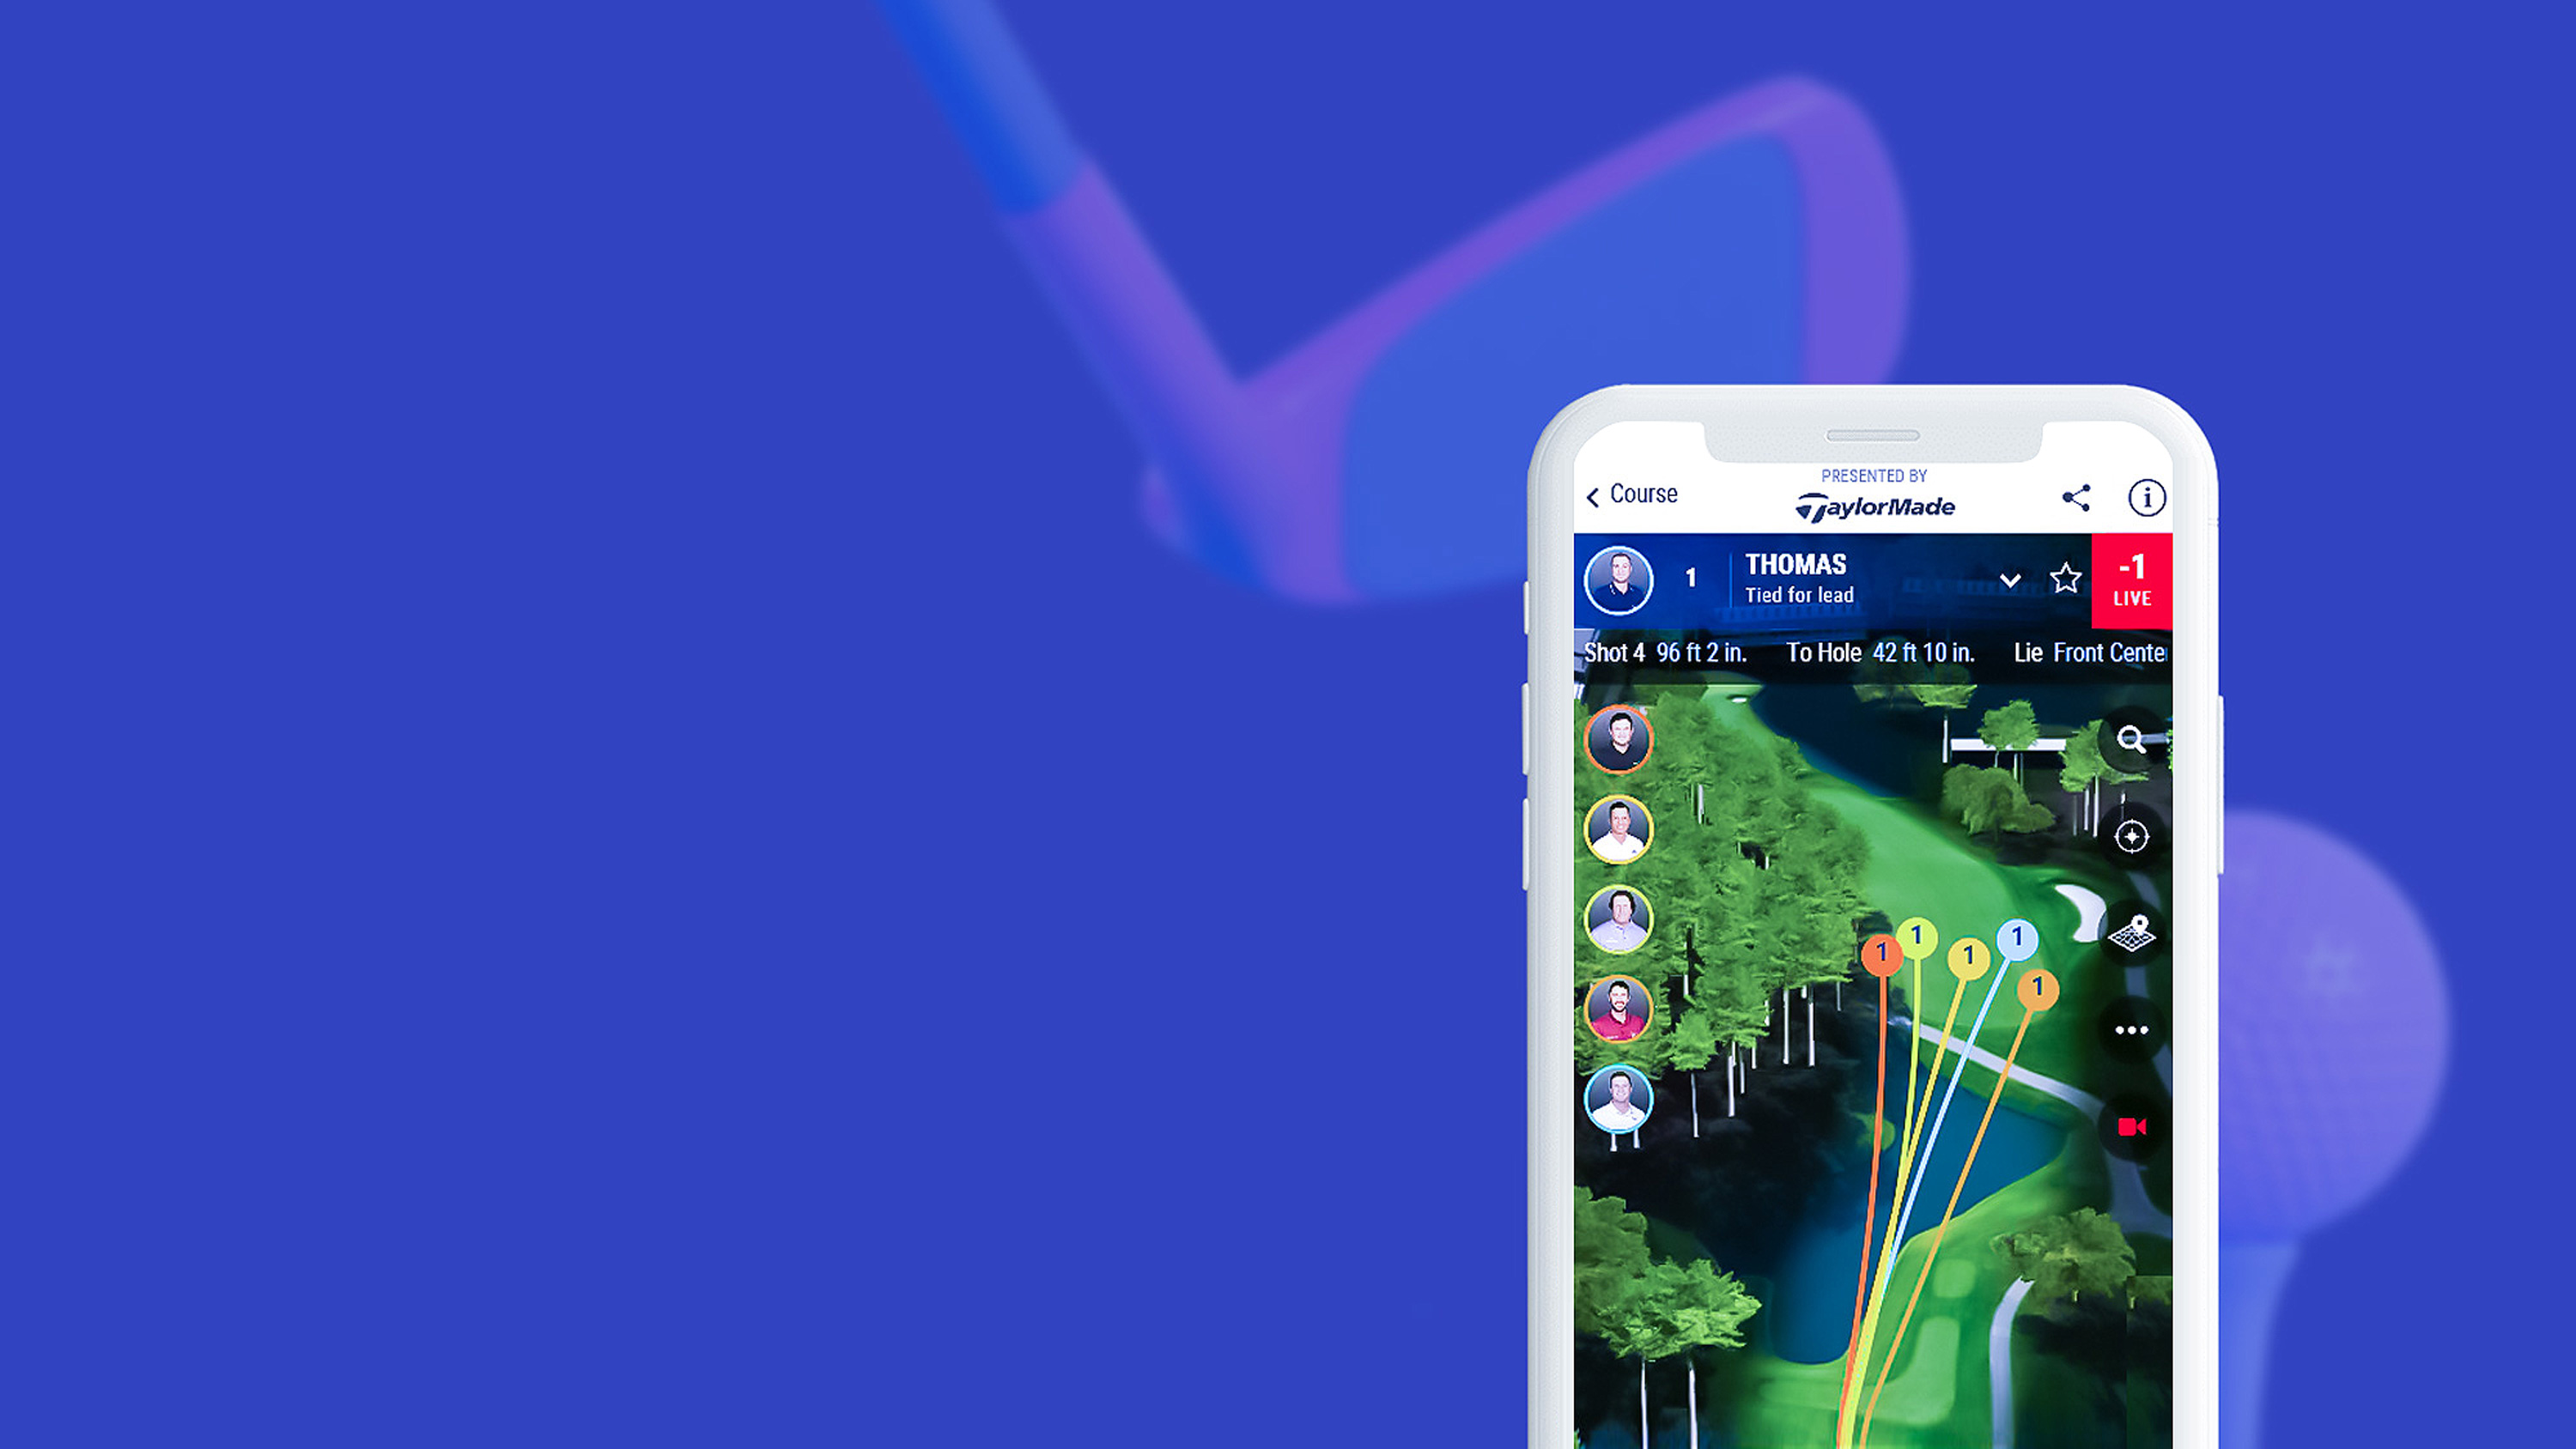 Phone with PGA TOUR course with golfer strokes AR projection